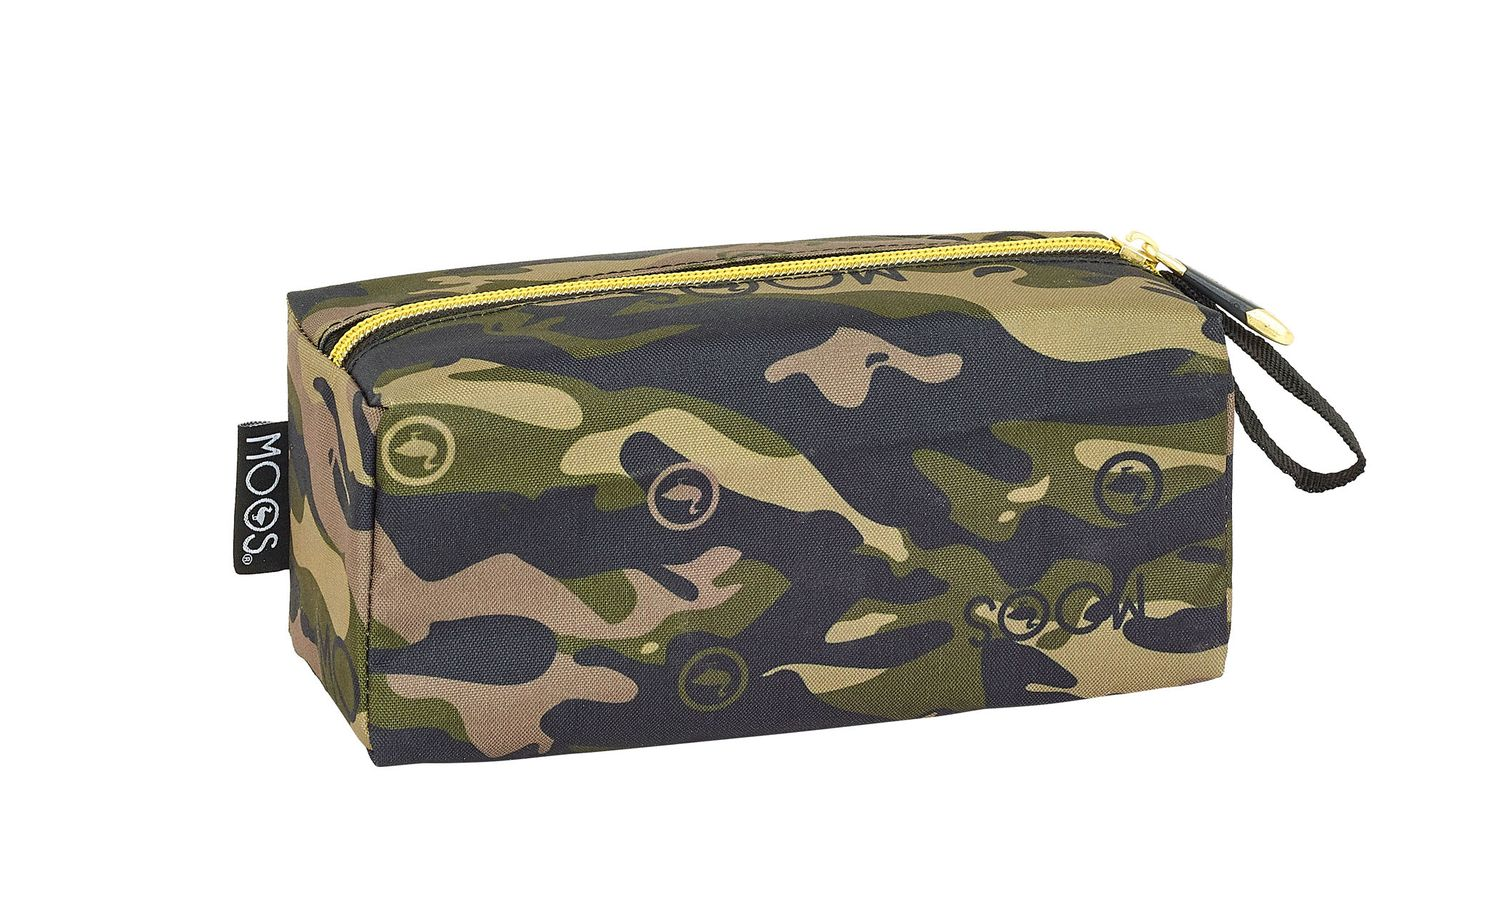 Vanity Case MOSS Camouflage – image 2